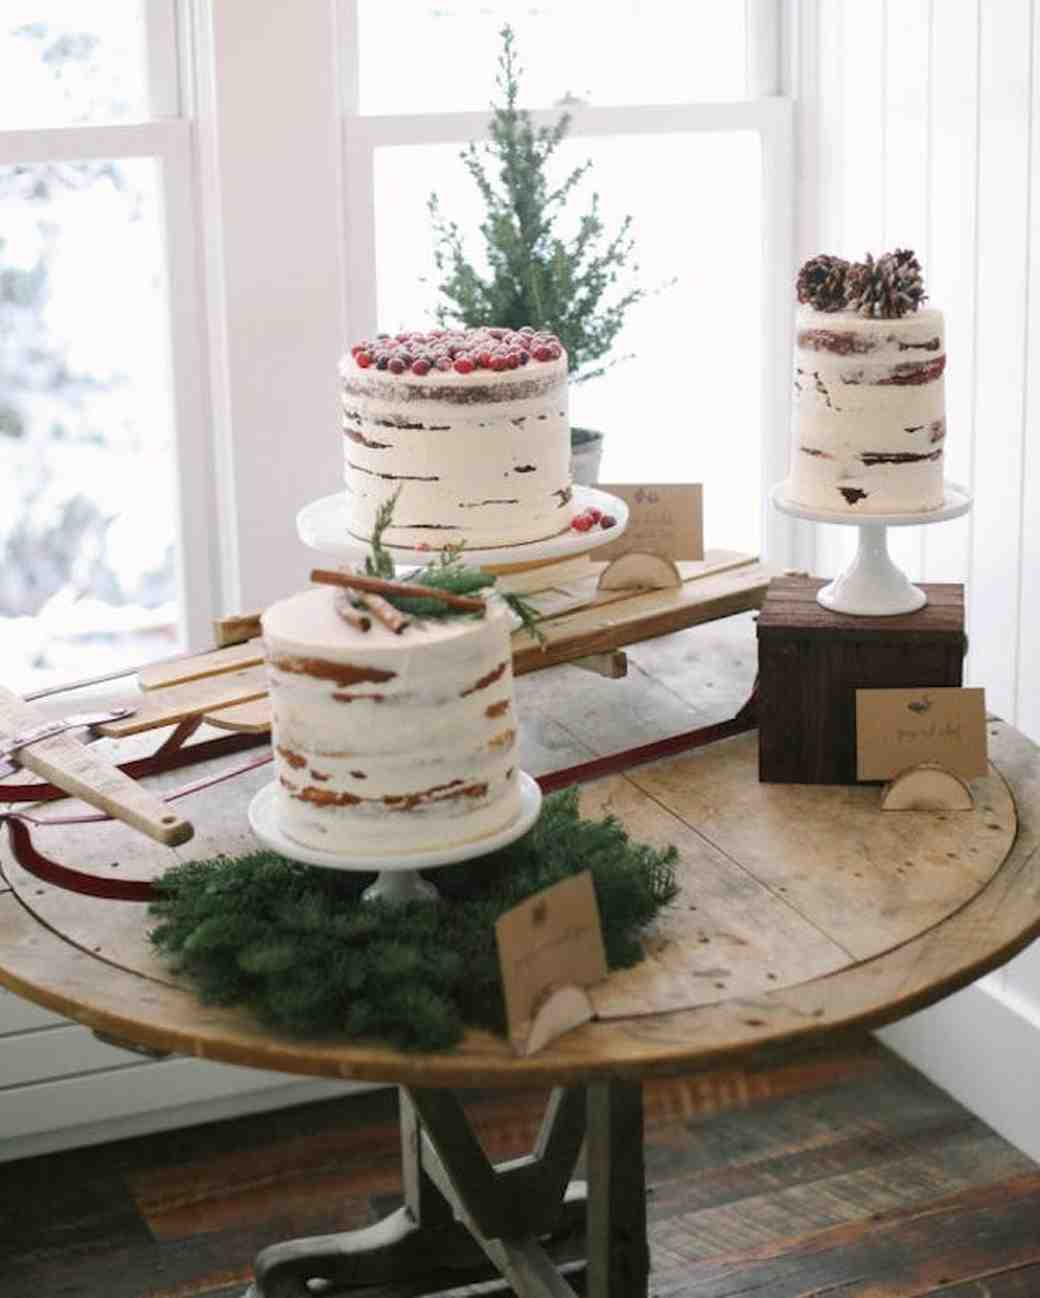 25 Festive Christmas Tree-Inspired Wedding Ideas